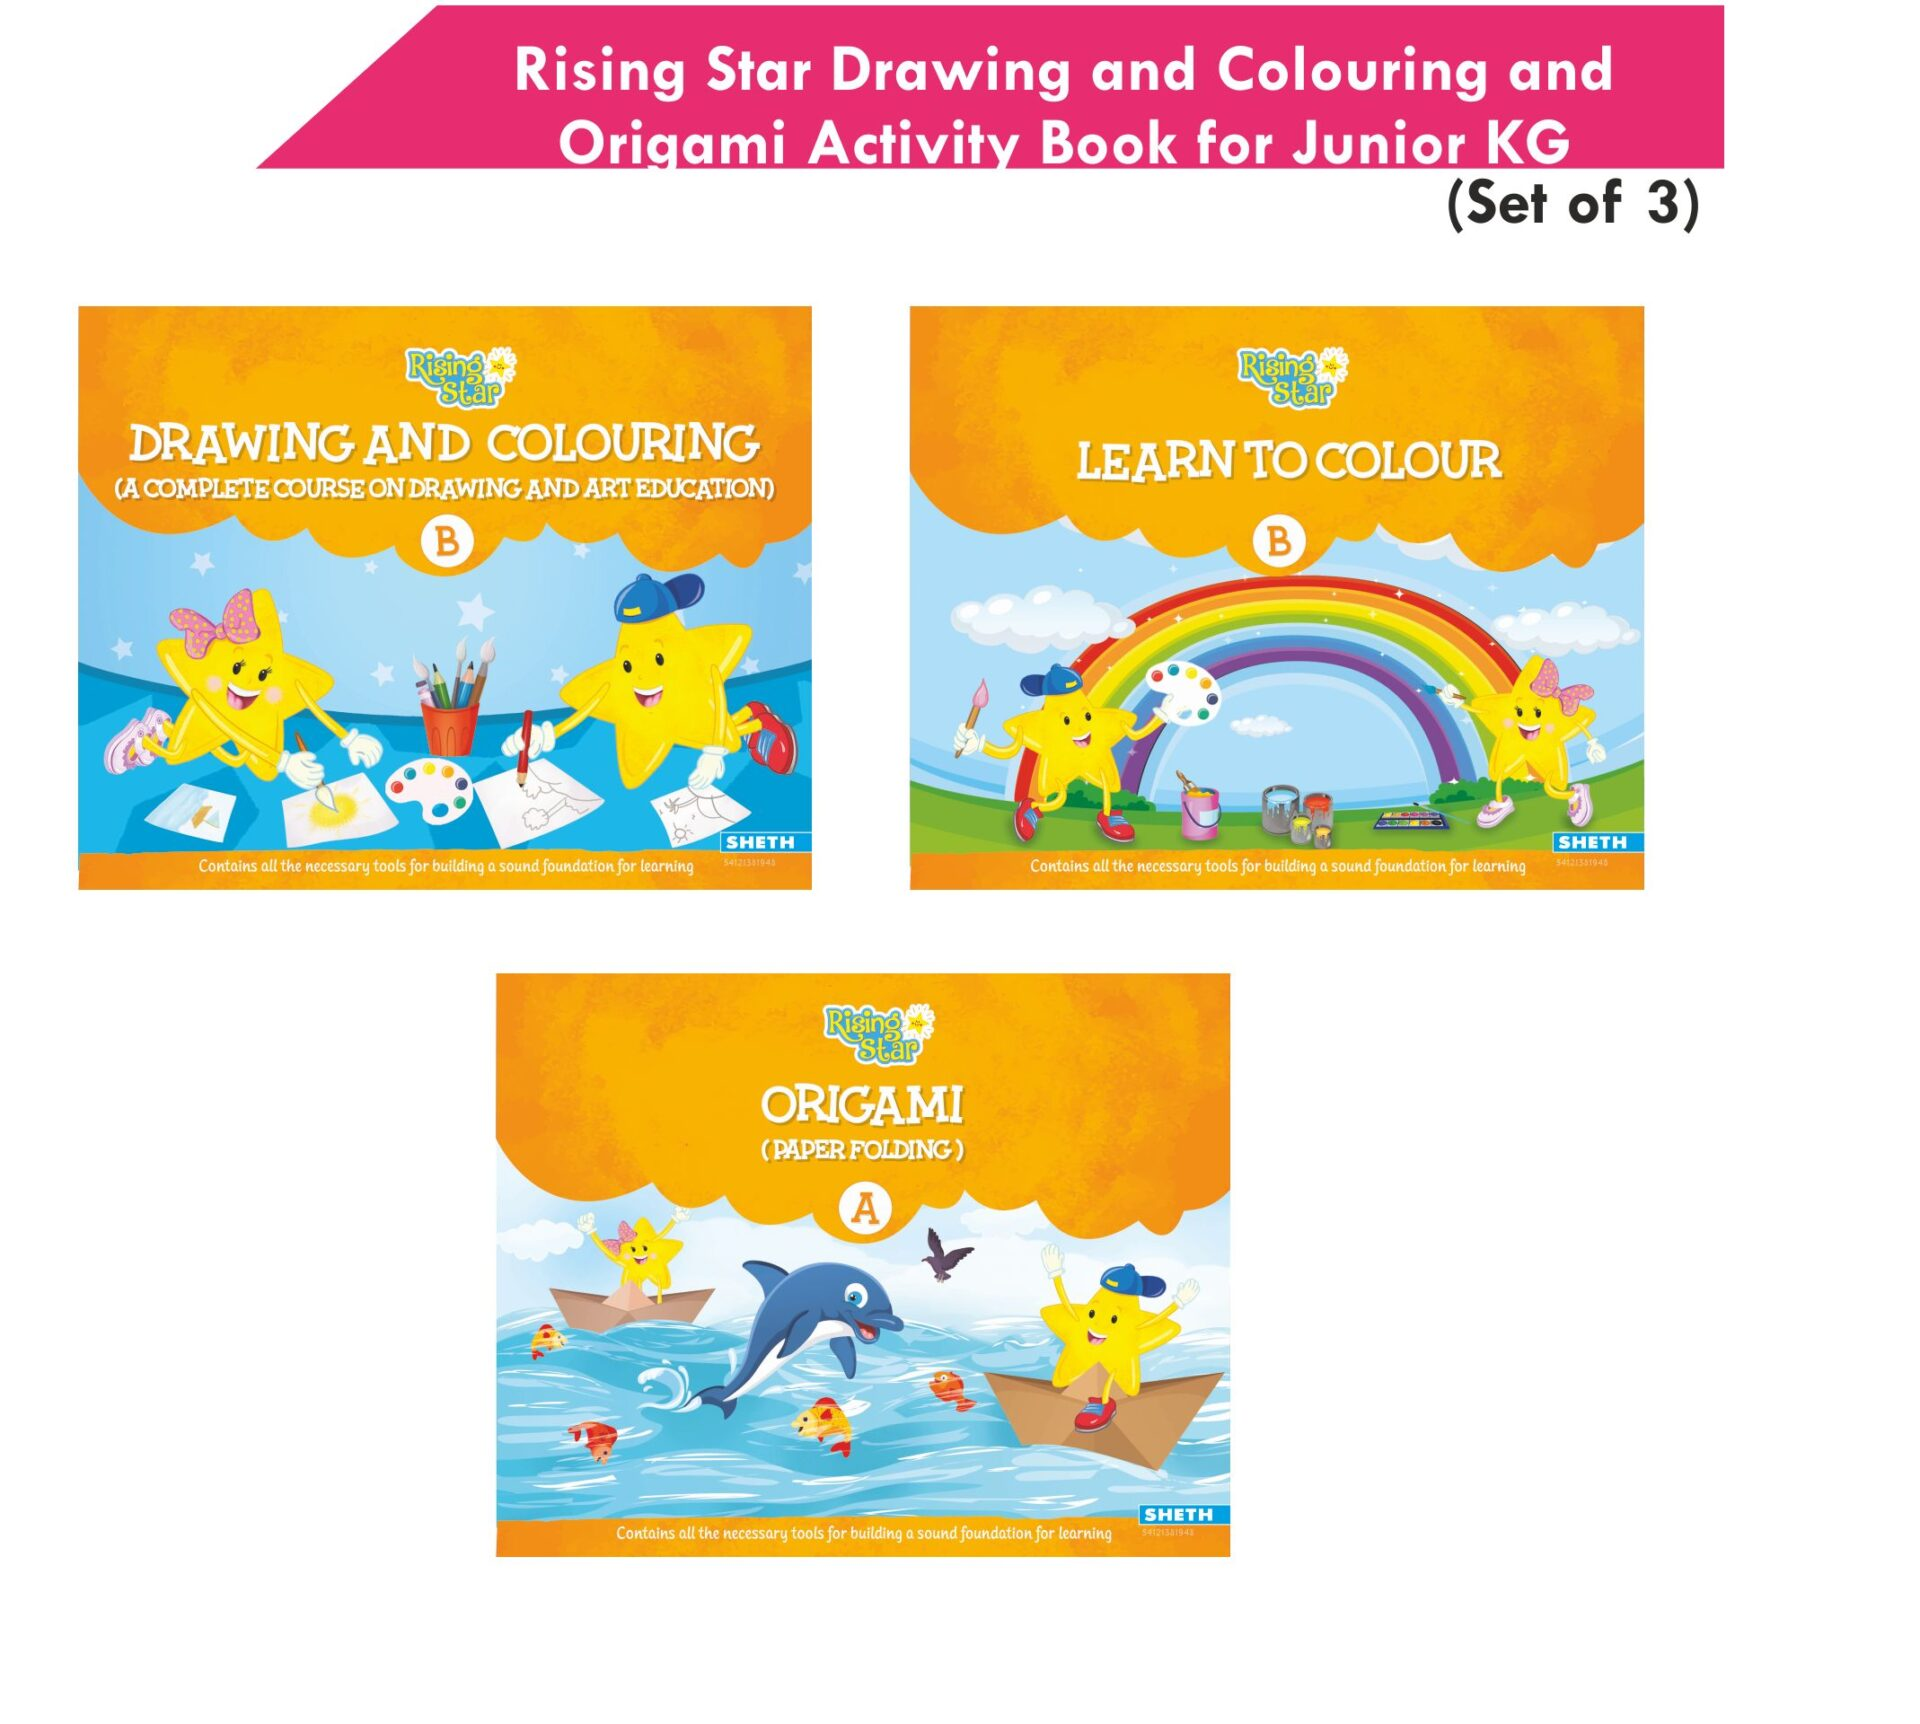 Rising Star Drawing and Colouring and Origami Activity Book for Junior KG Set of 3 1